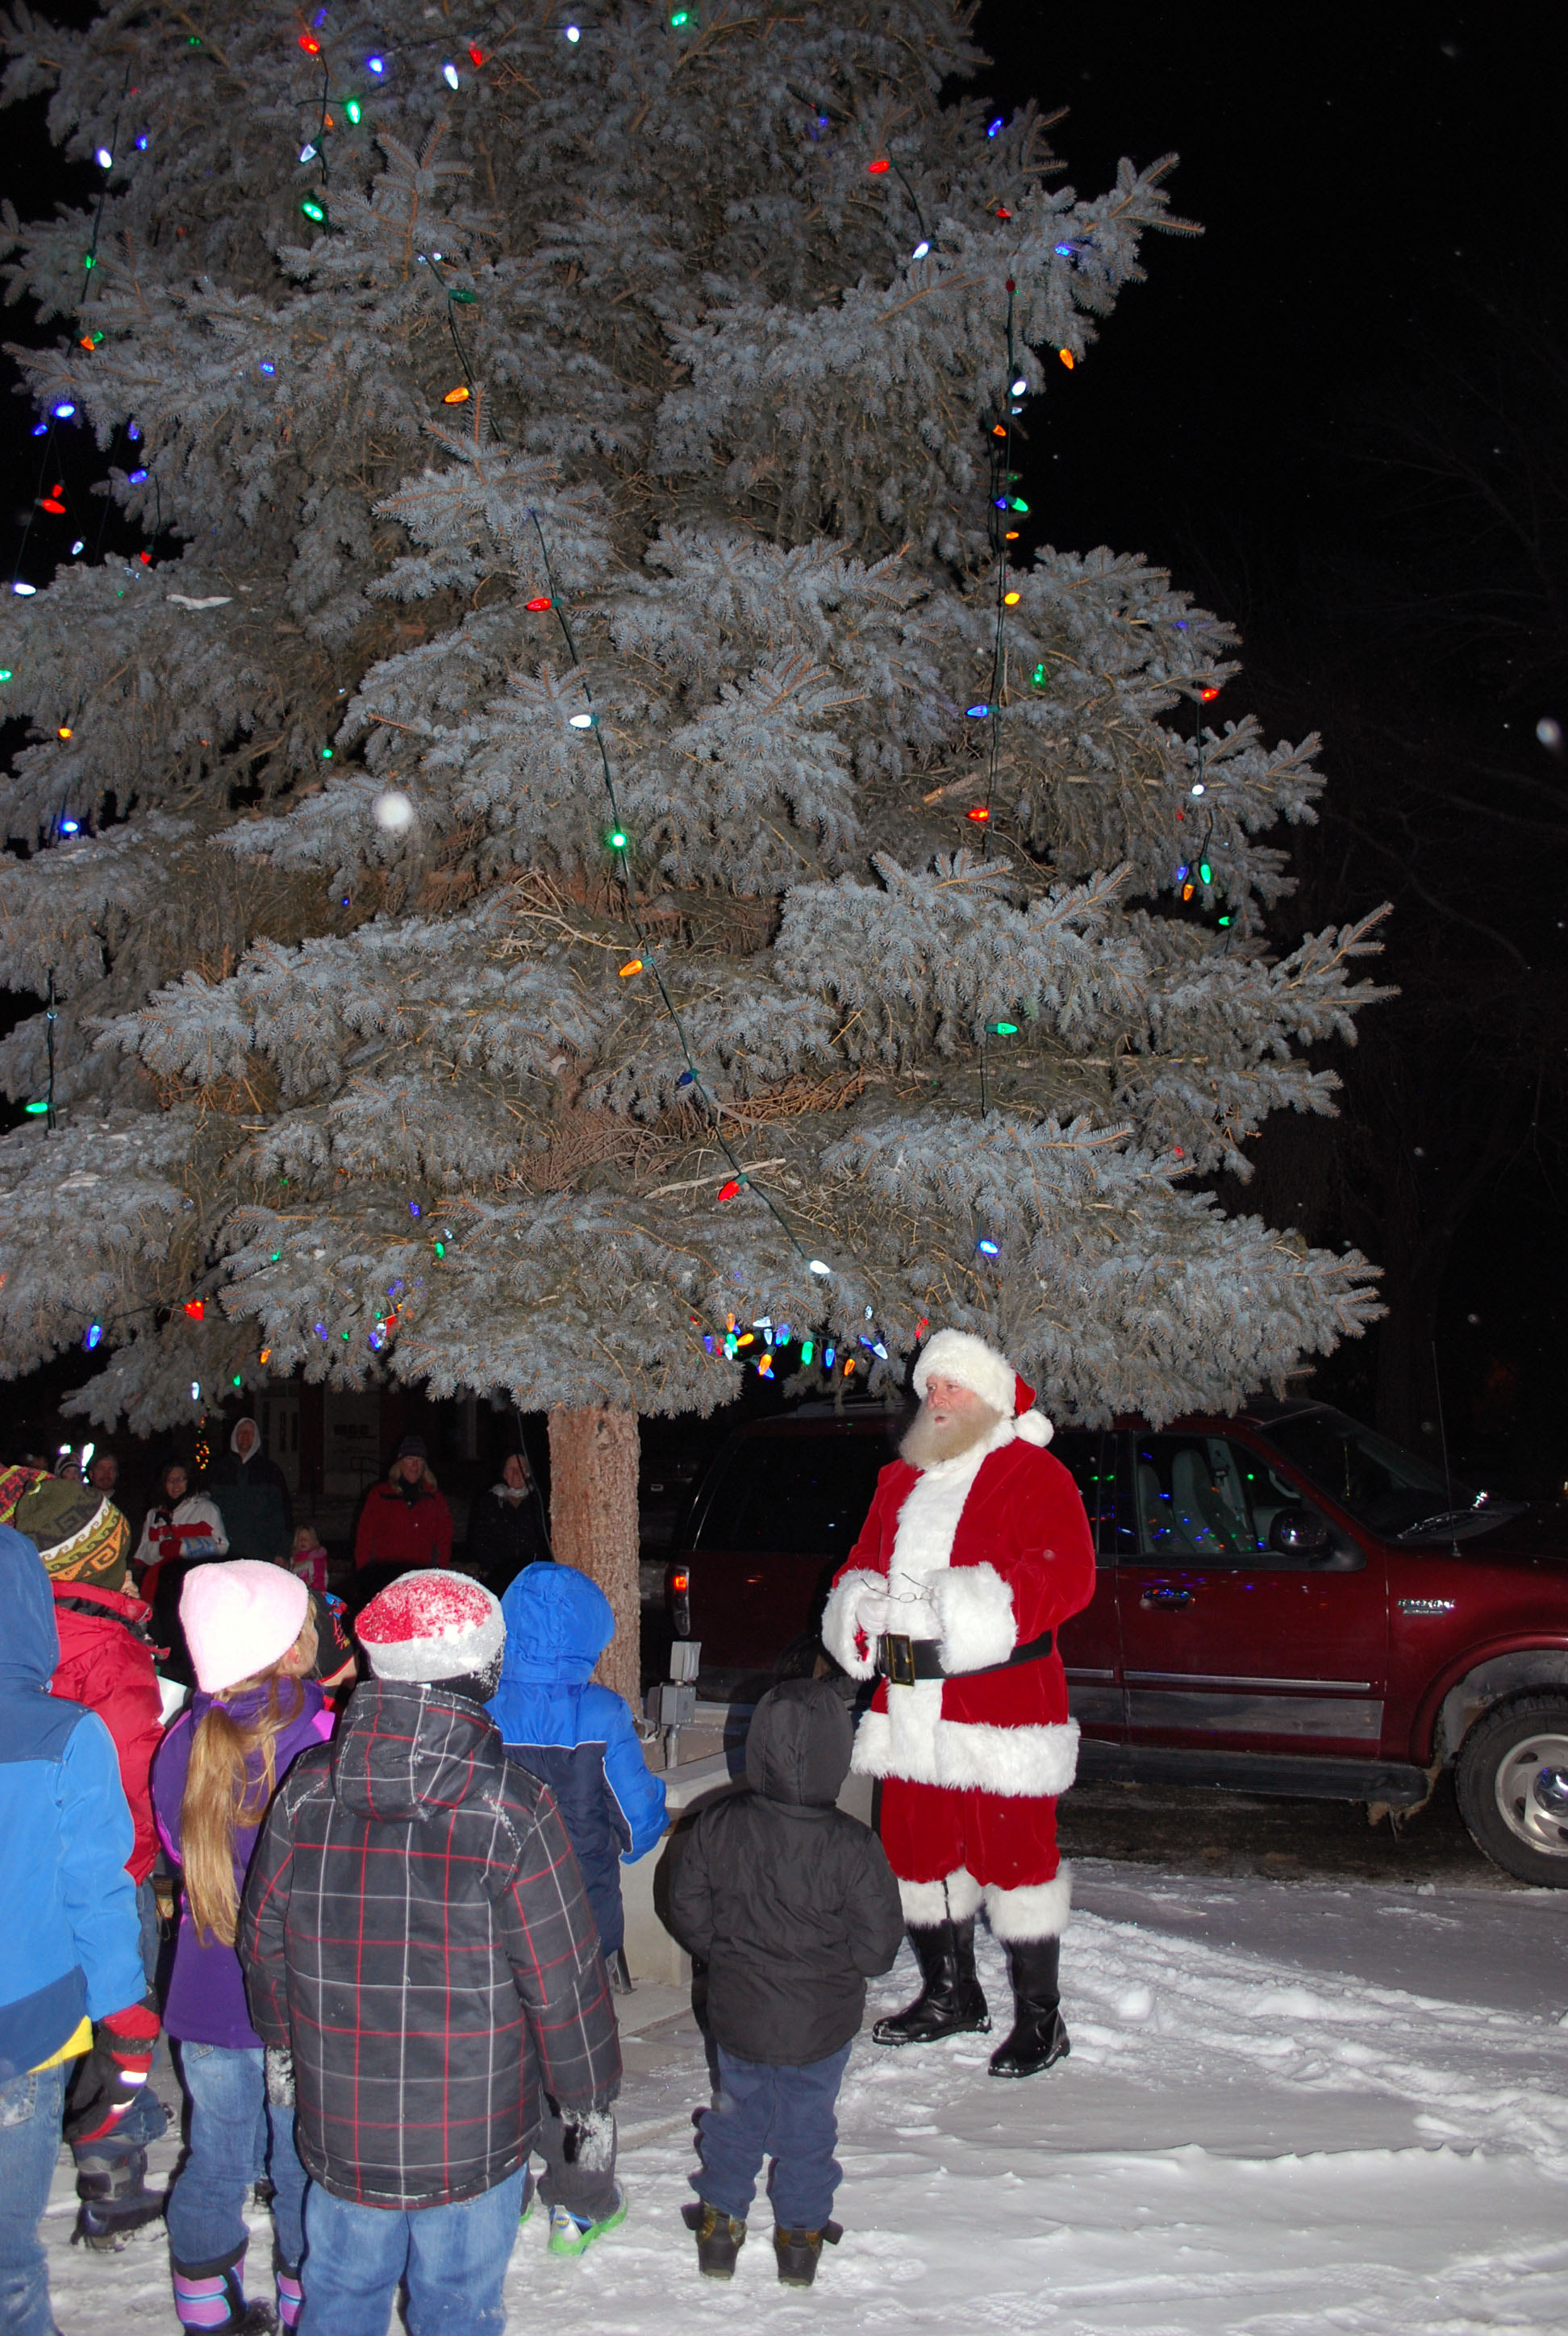 Local businesses make tree lighting ceremony possible